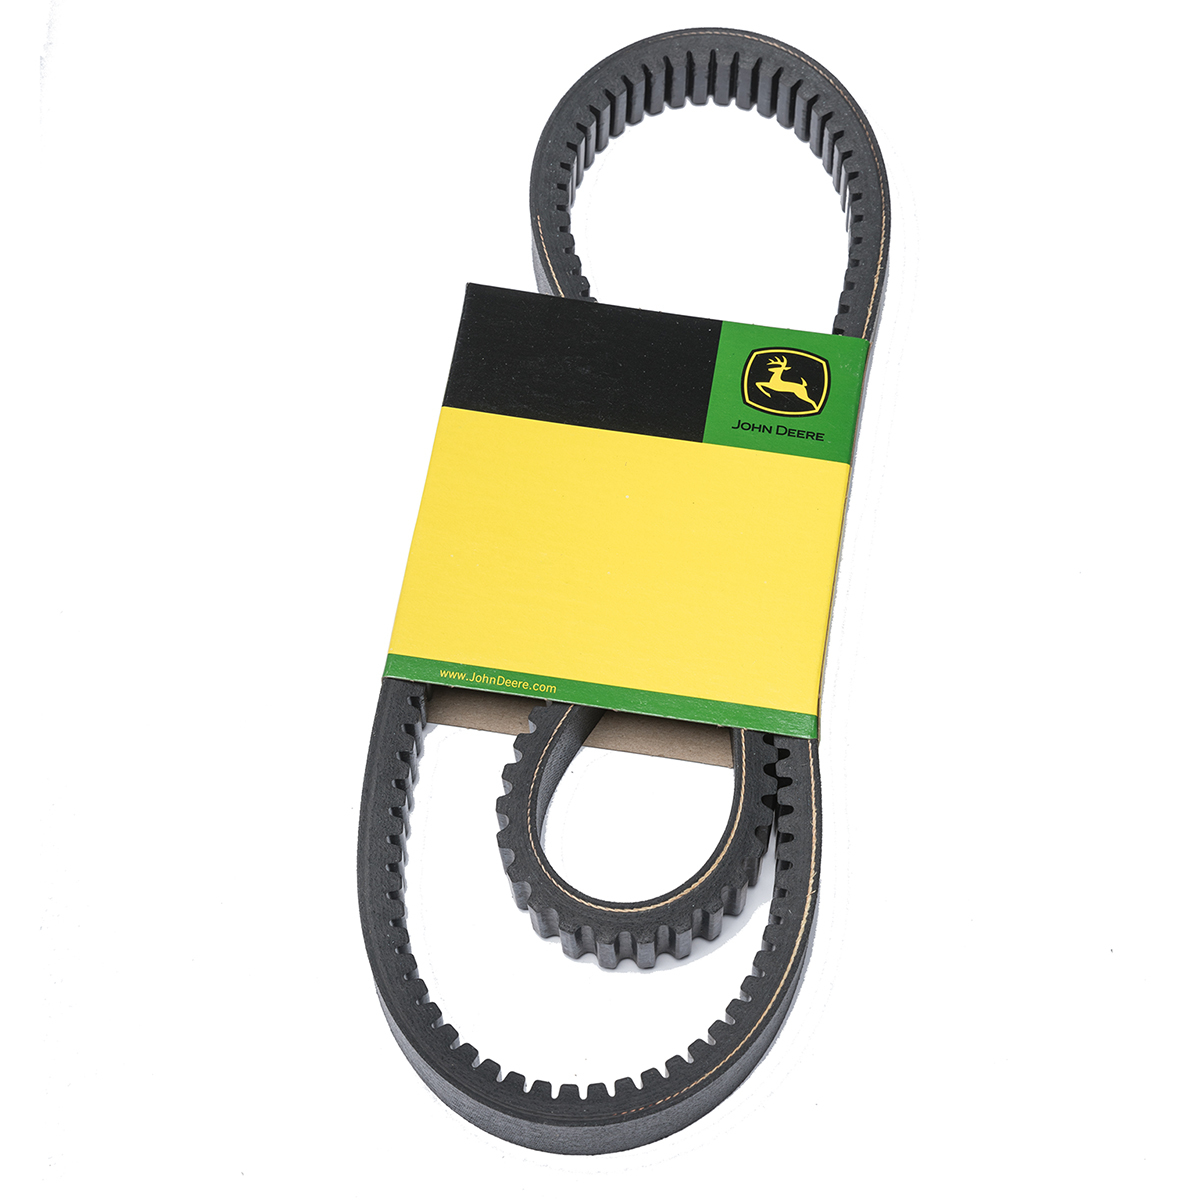 Transaxle Driven Clutch Drive Belt For 4x2 And 6x4 Gator Utility Vehicles